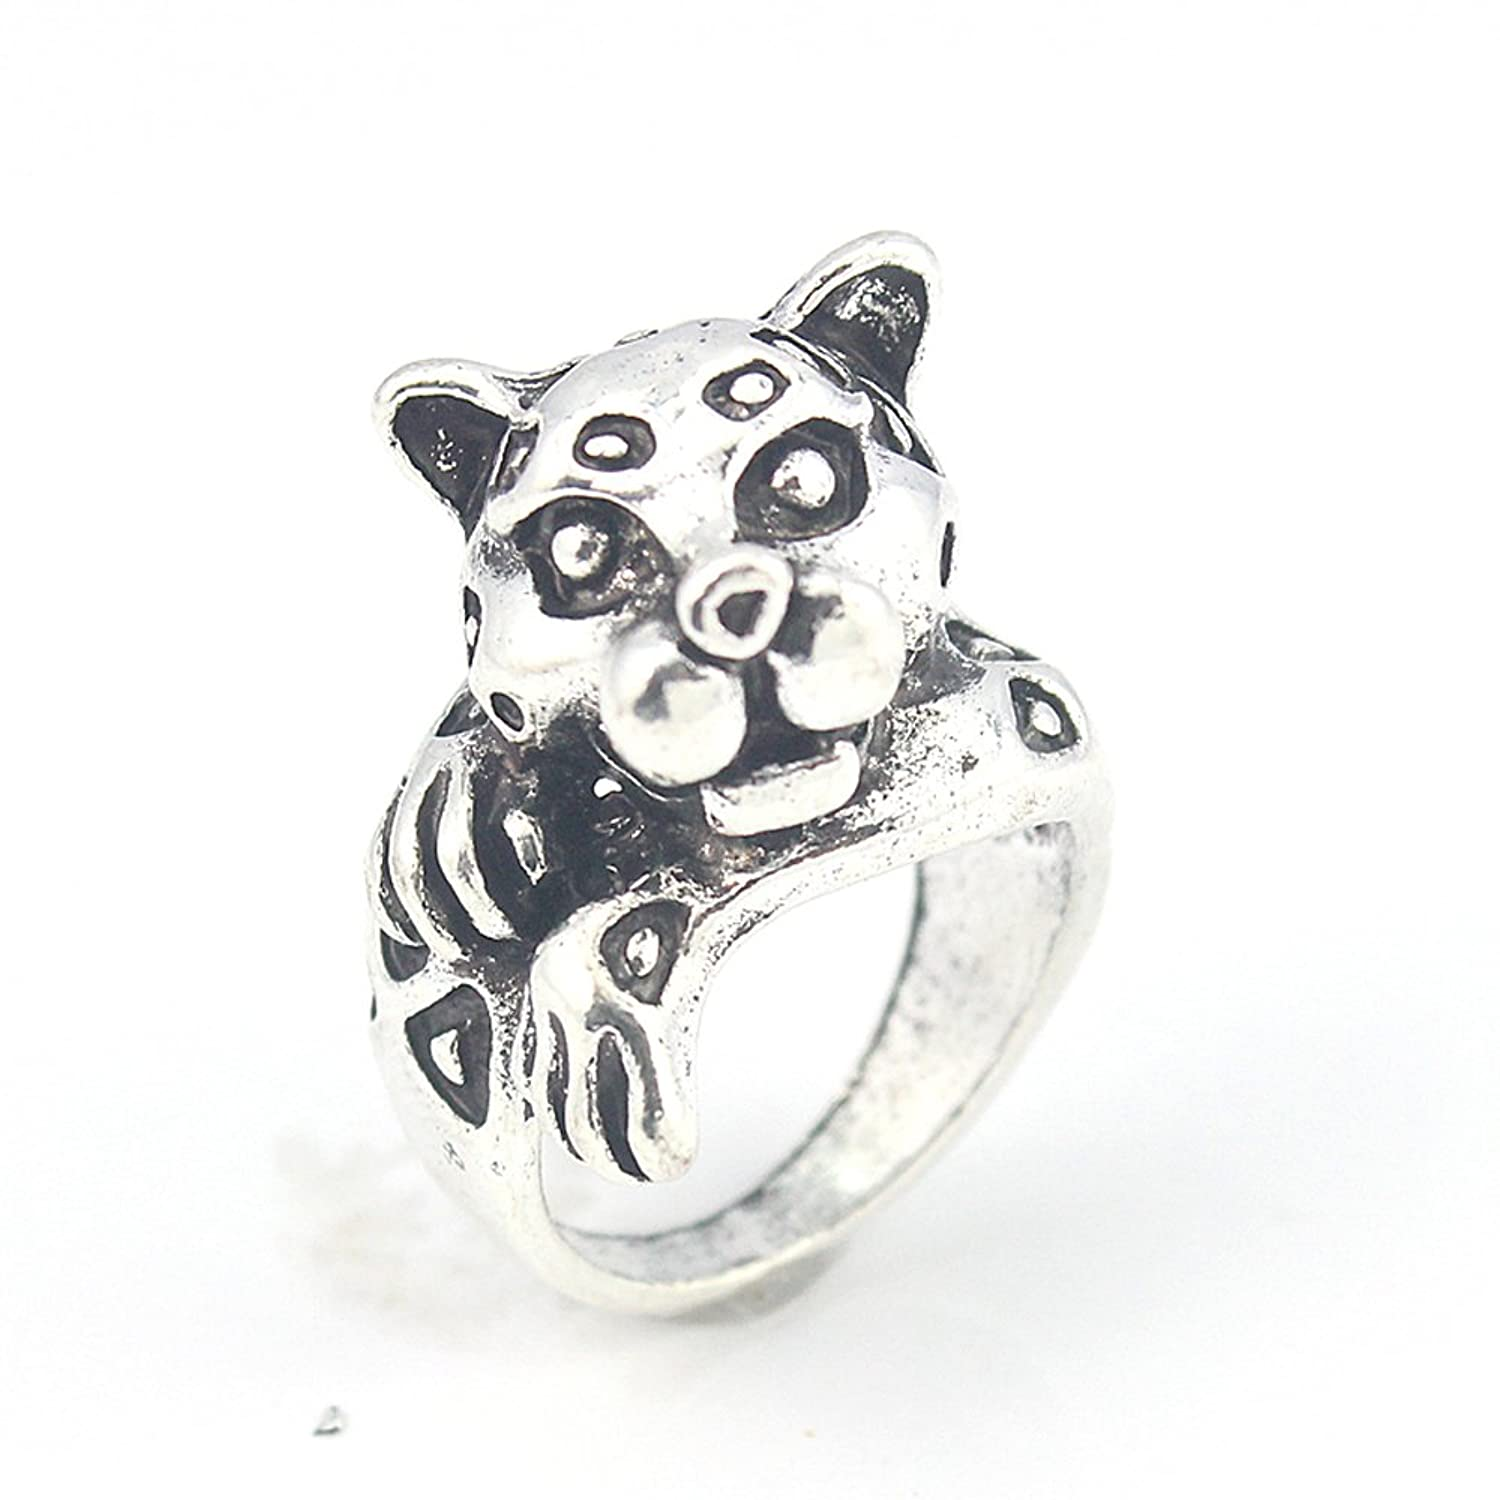 TIGER PLAIN FASHION JEWELRY .925 SILVER PLATED RING 6.5 S23634